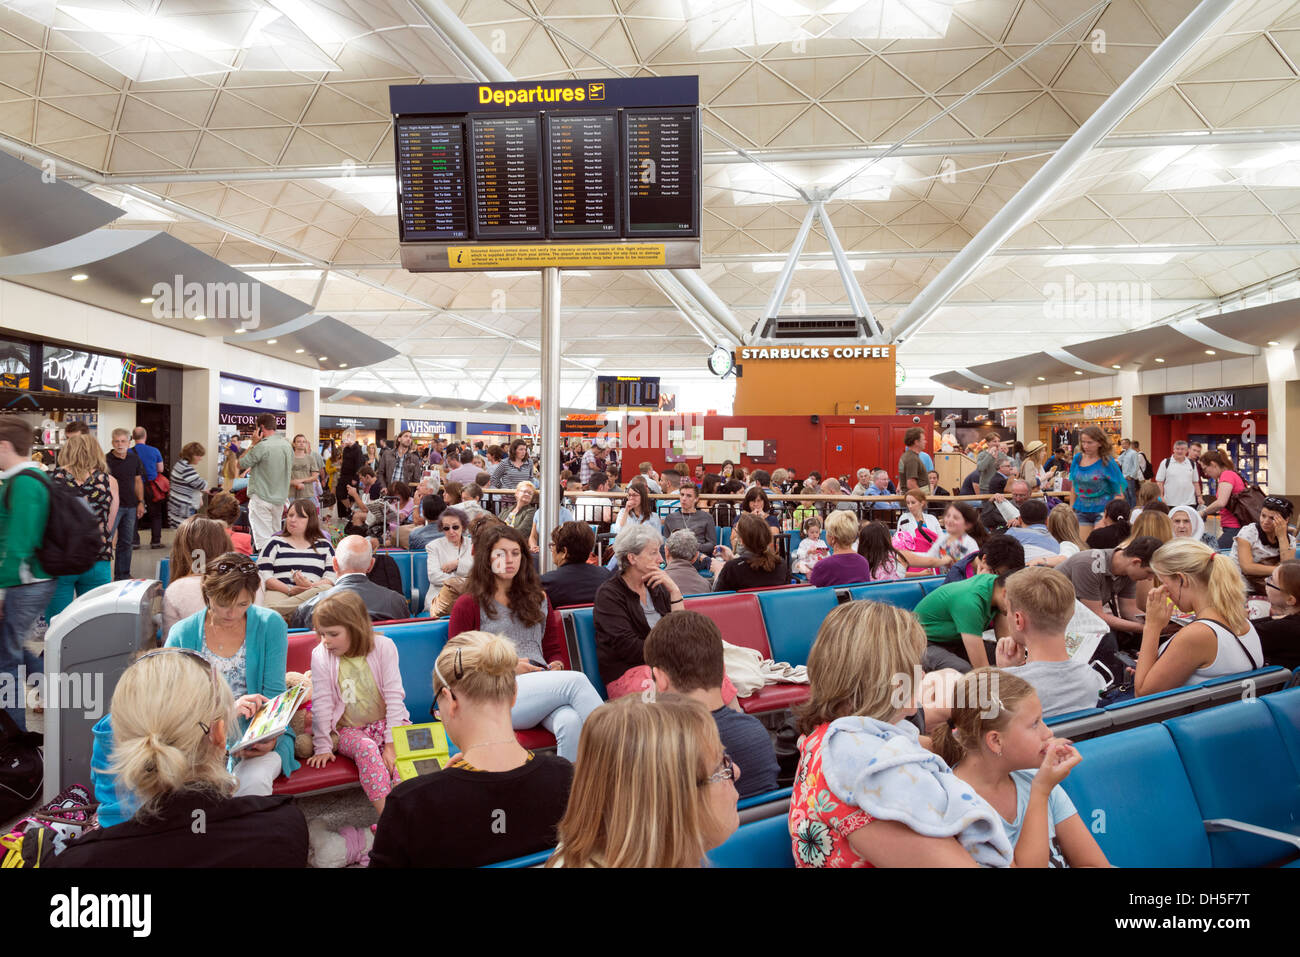 People waiting in the crowded departures lounge of Stansted airport, England, UK - Stock Image